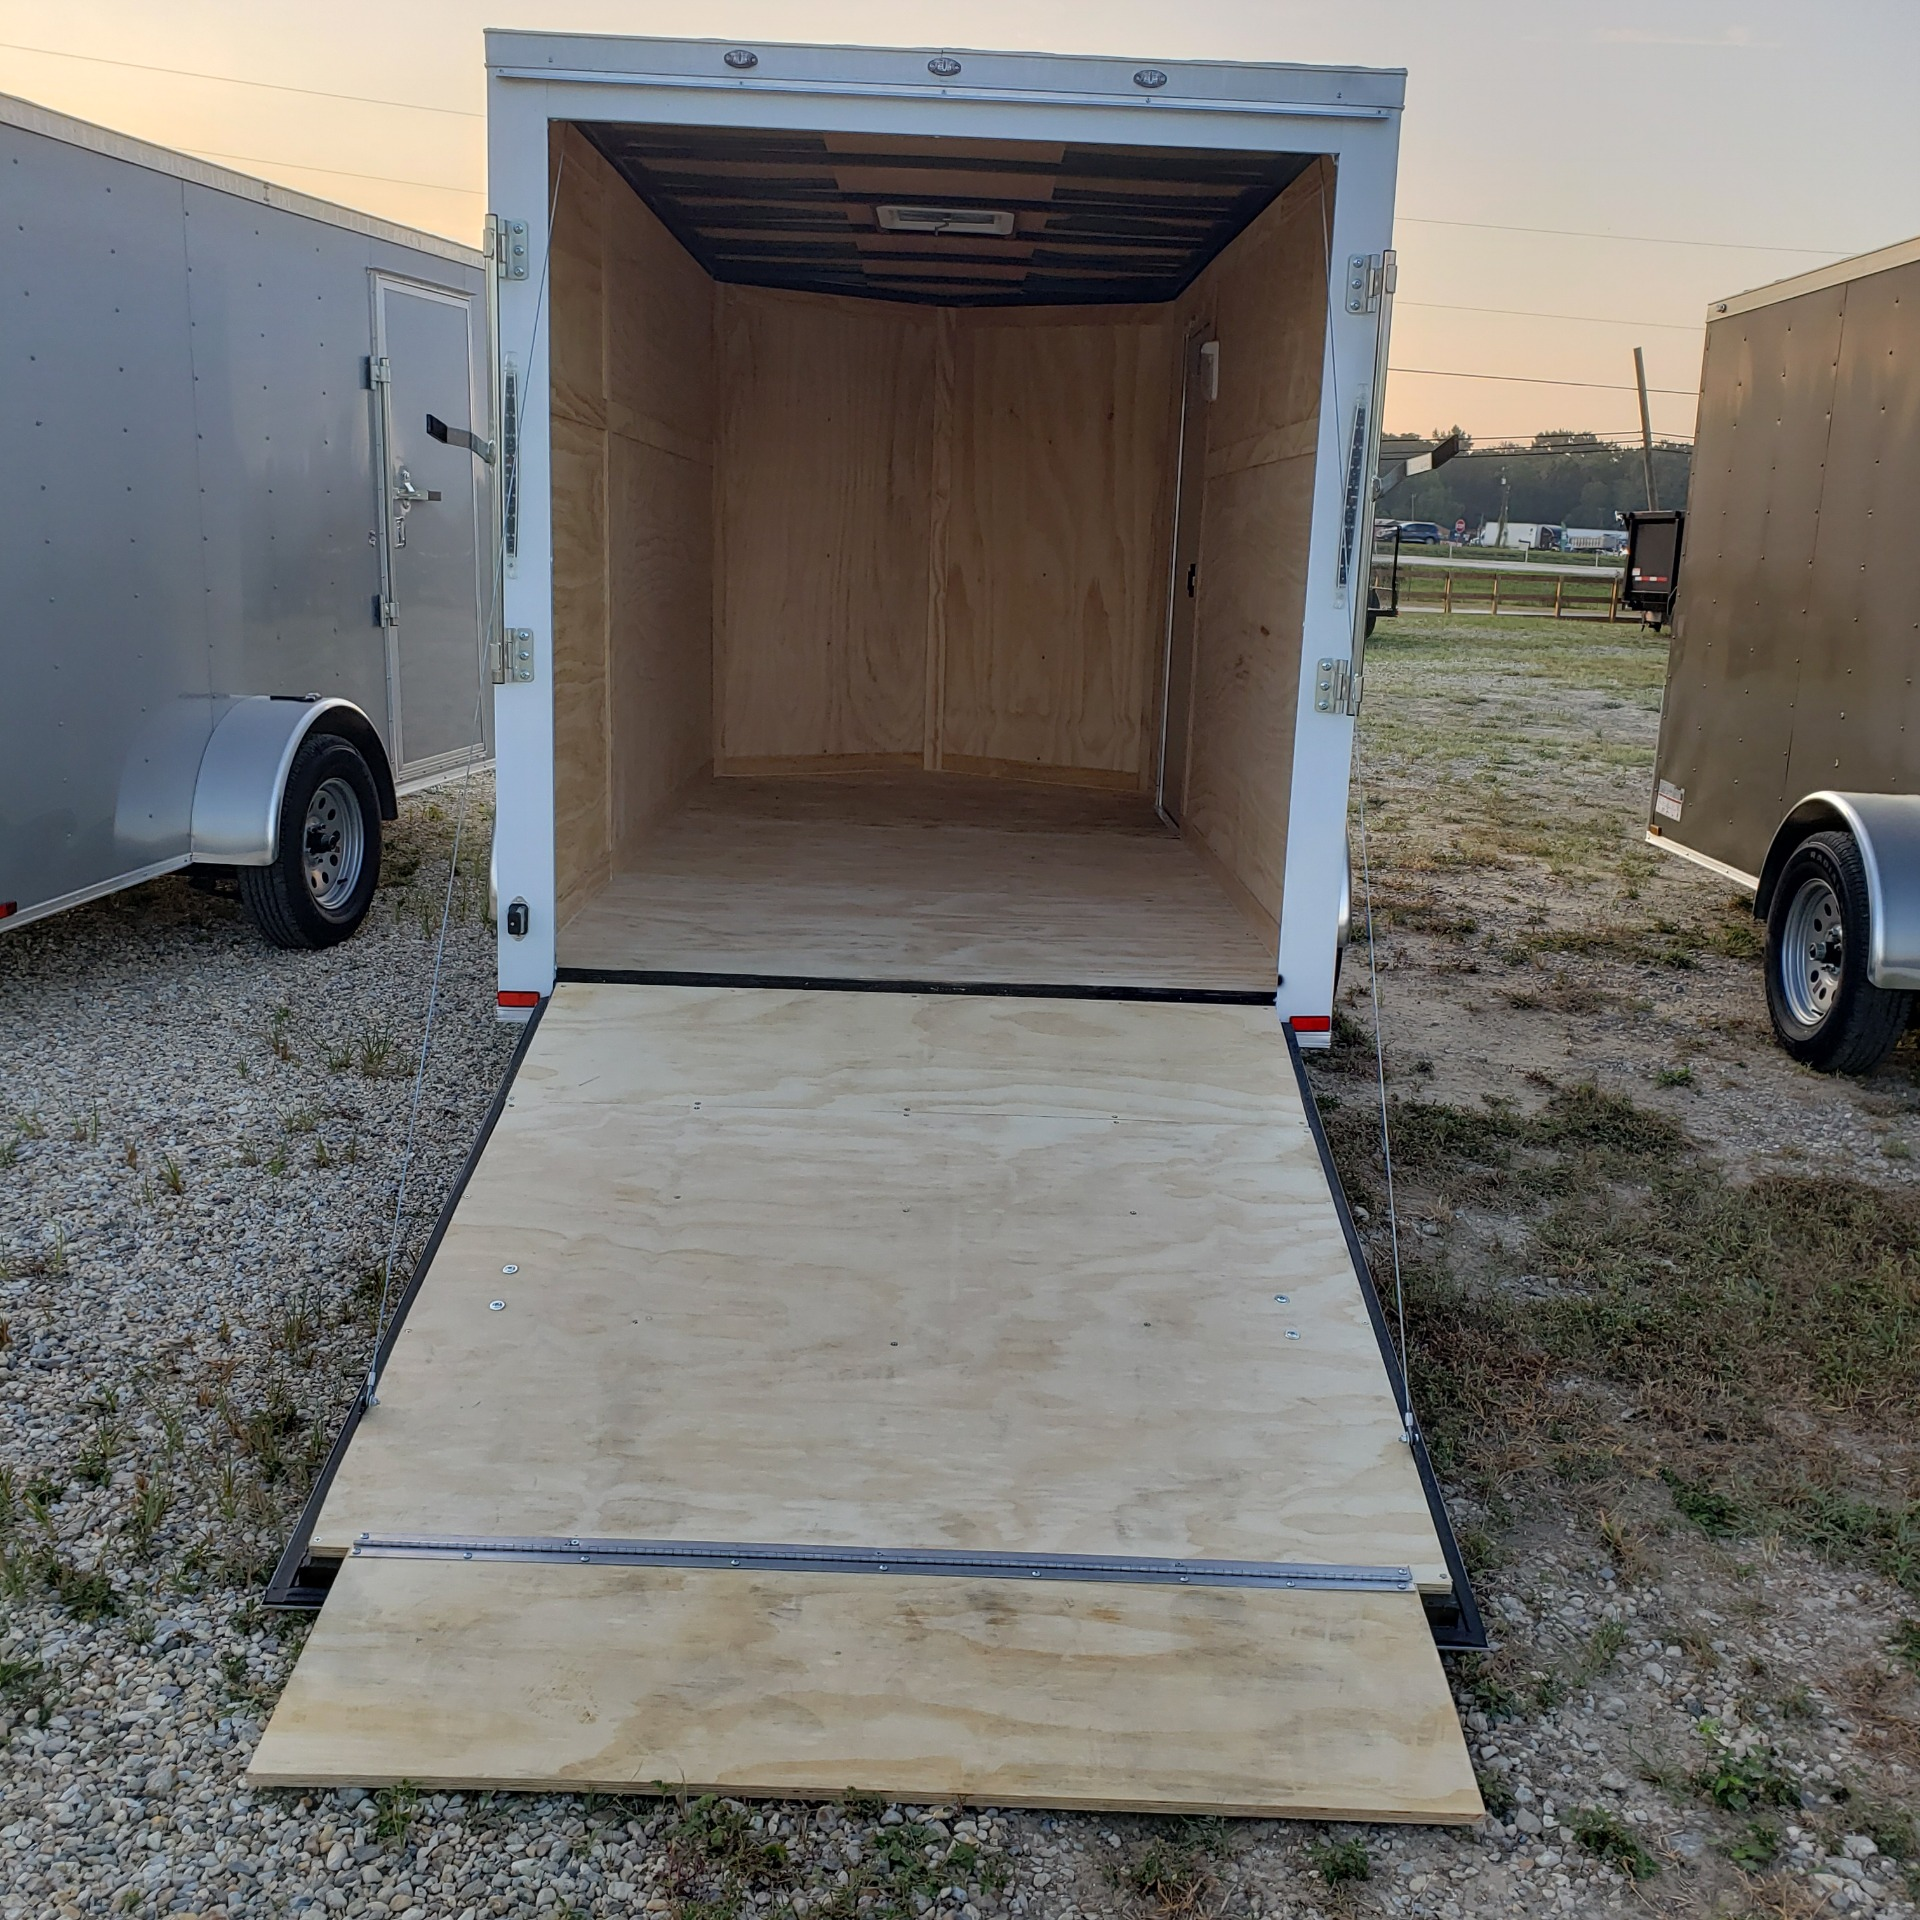 2020 Spartan Trailers 6 X 12 ENCLOSED TRAILER in Pearl River, Louisiana - Photo 5